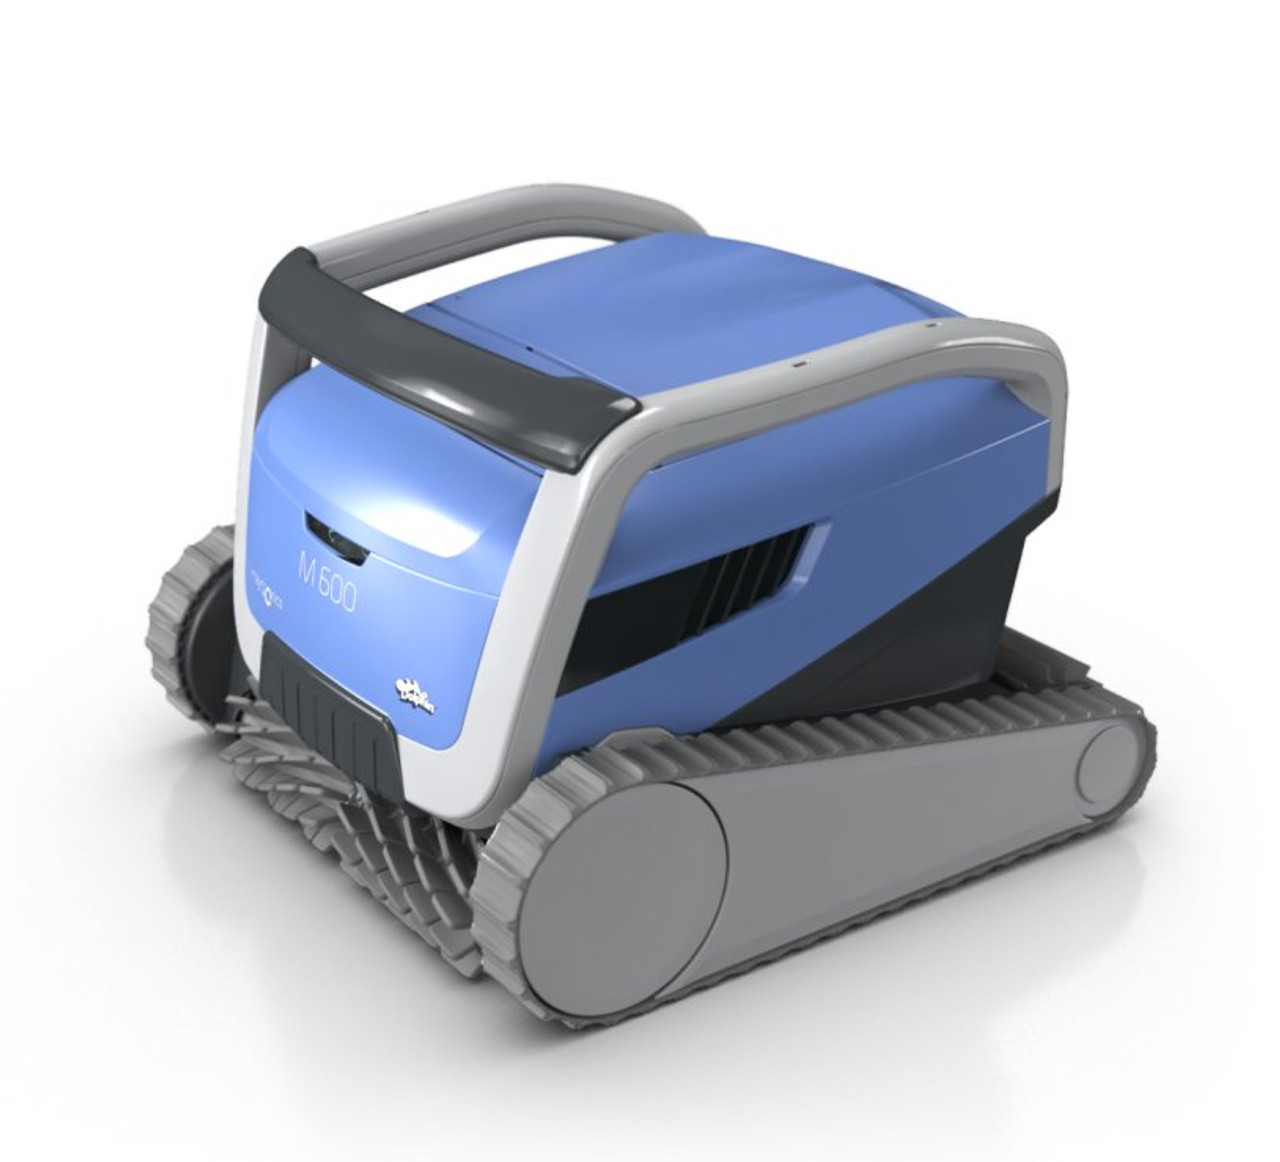 Dolphin M600 Robotic Swimming Pool Cleaner from Maytronics